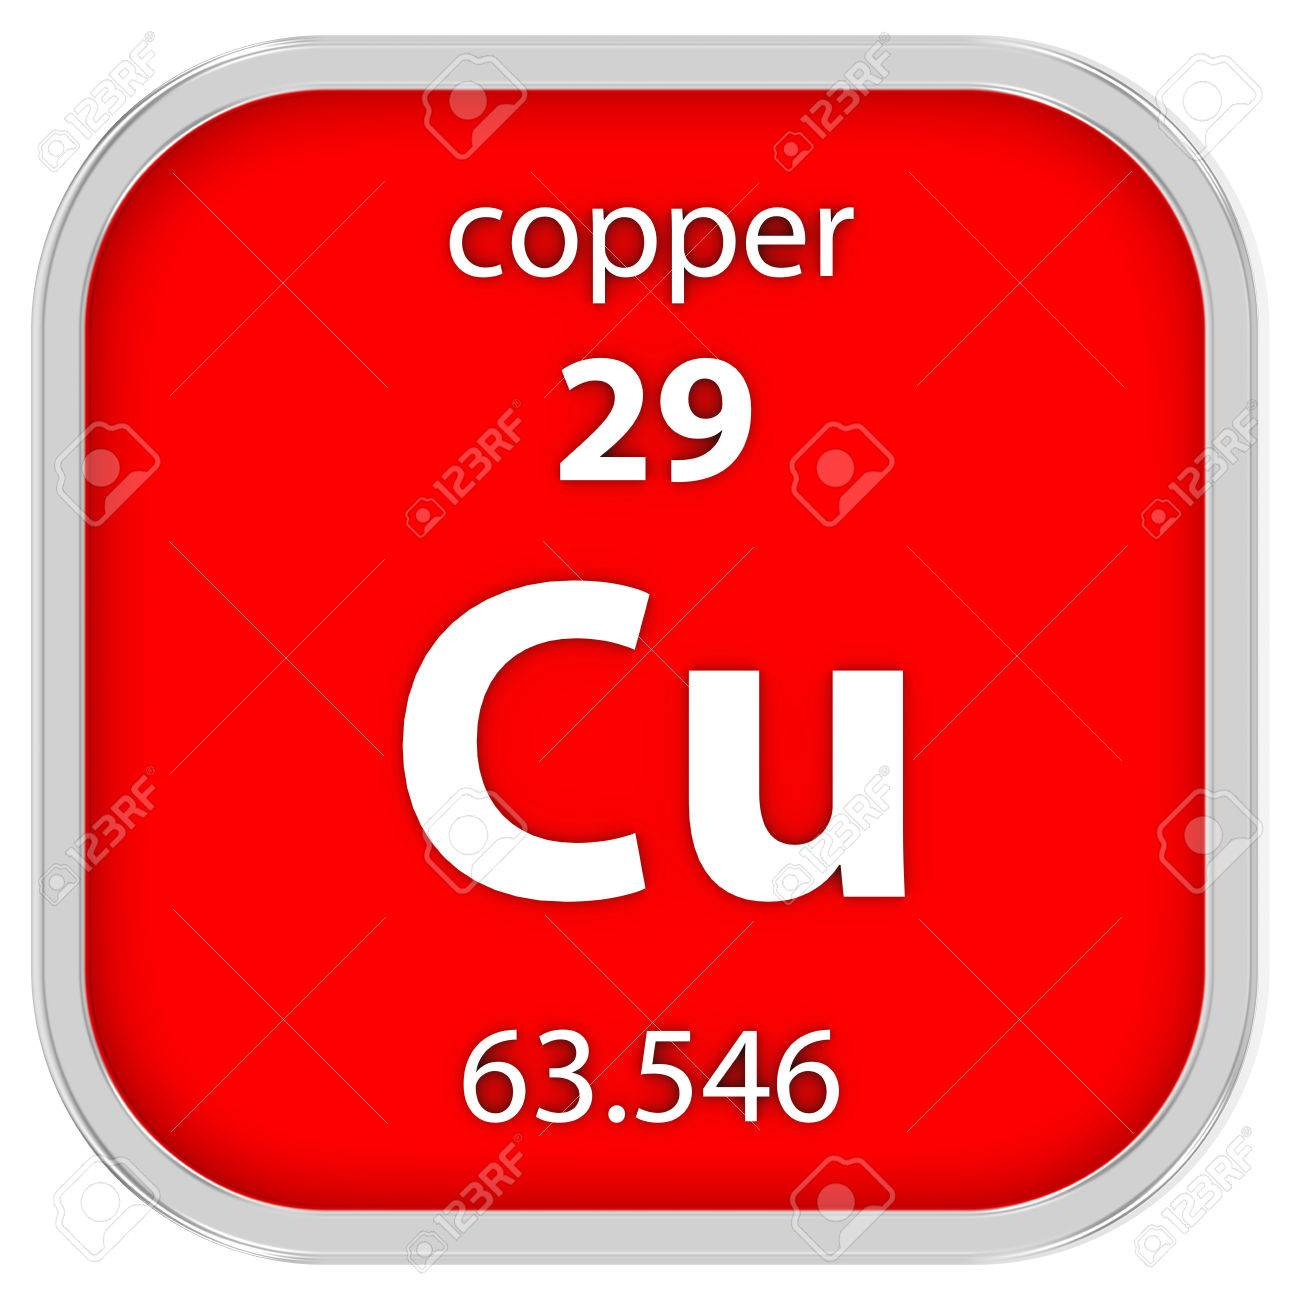 Copper periodic table facts choice image periodic table images what is the symbol for copper on the periodic table image what number is copper on gamestrikefo Choice Image